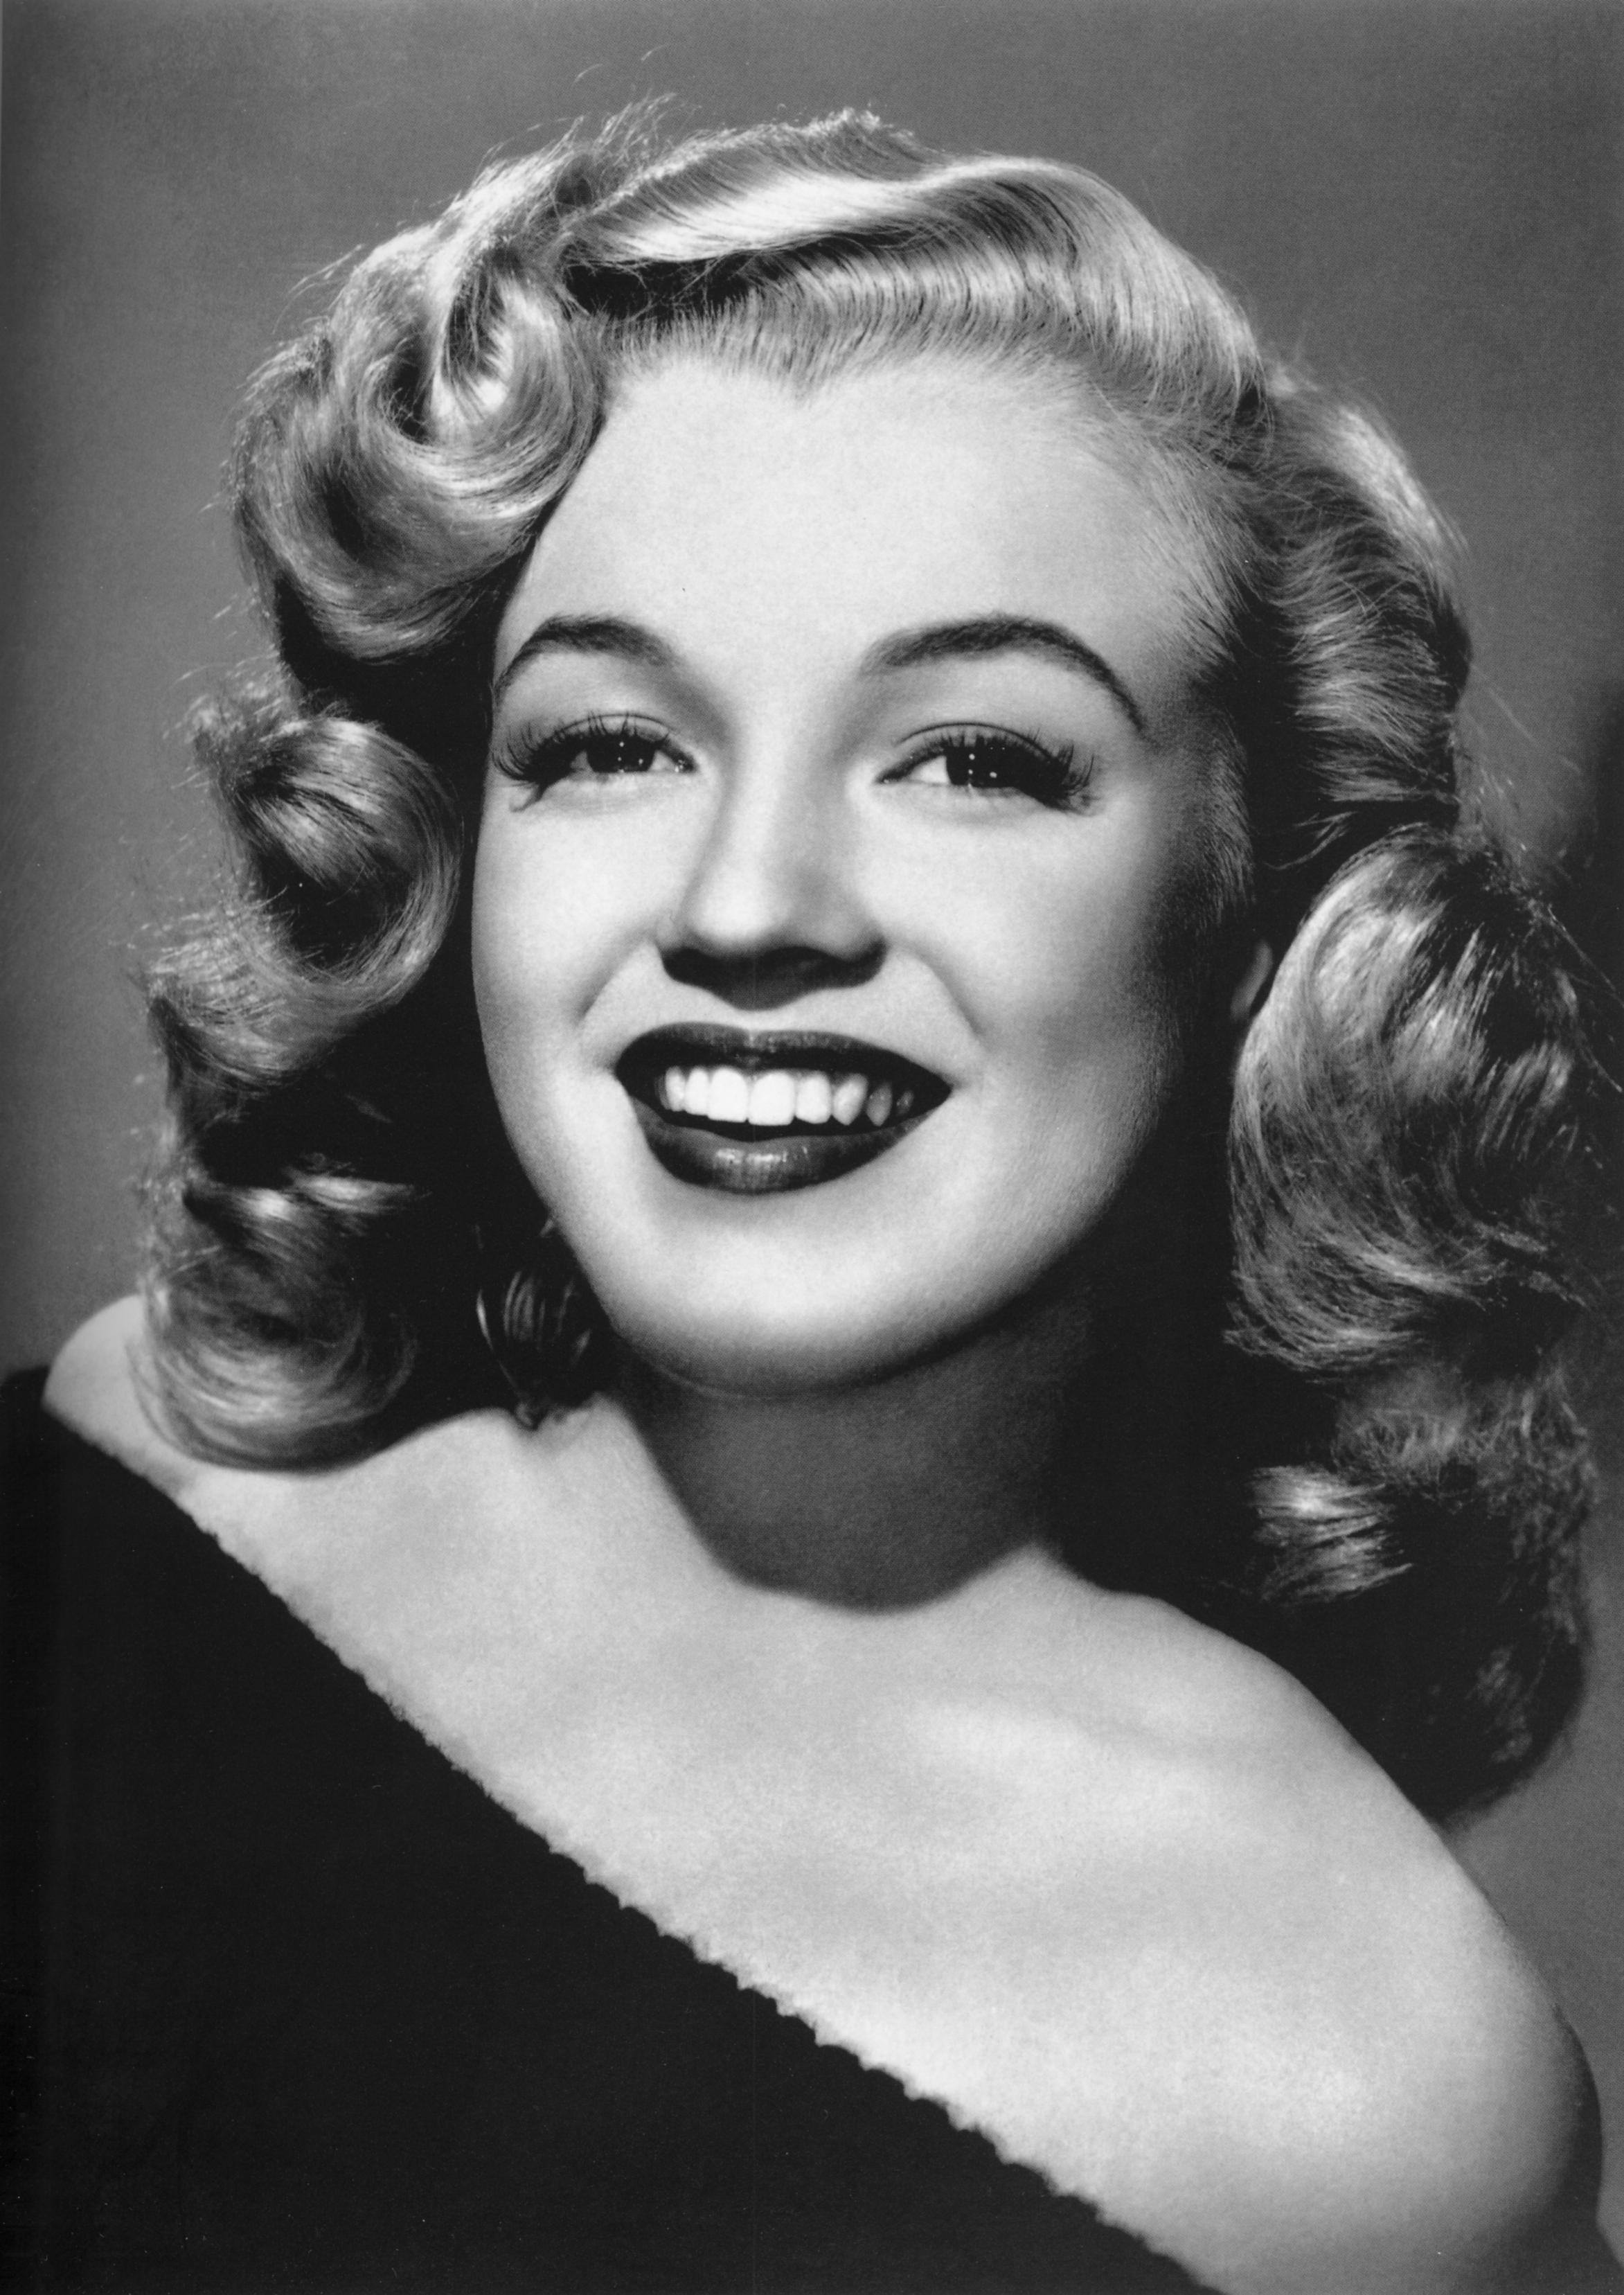 Marilyn Monroe, Actress, Beautiful, Black-and-white, Celebrity, HQ Photo